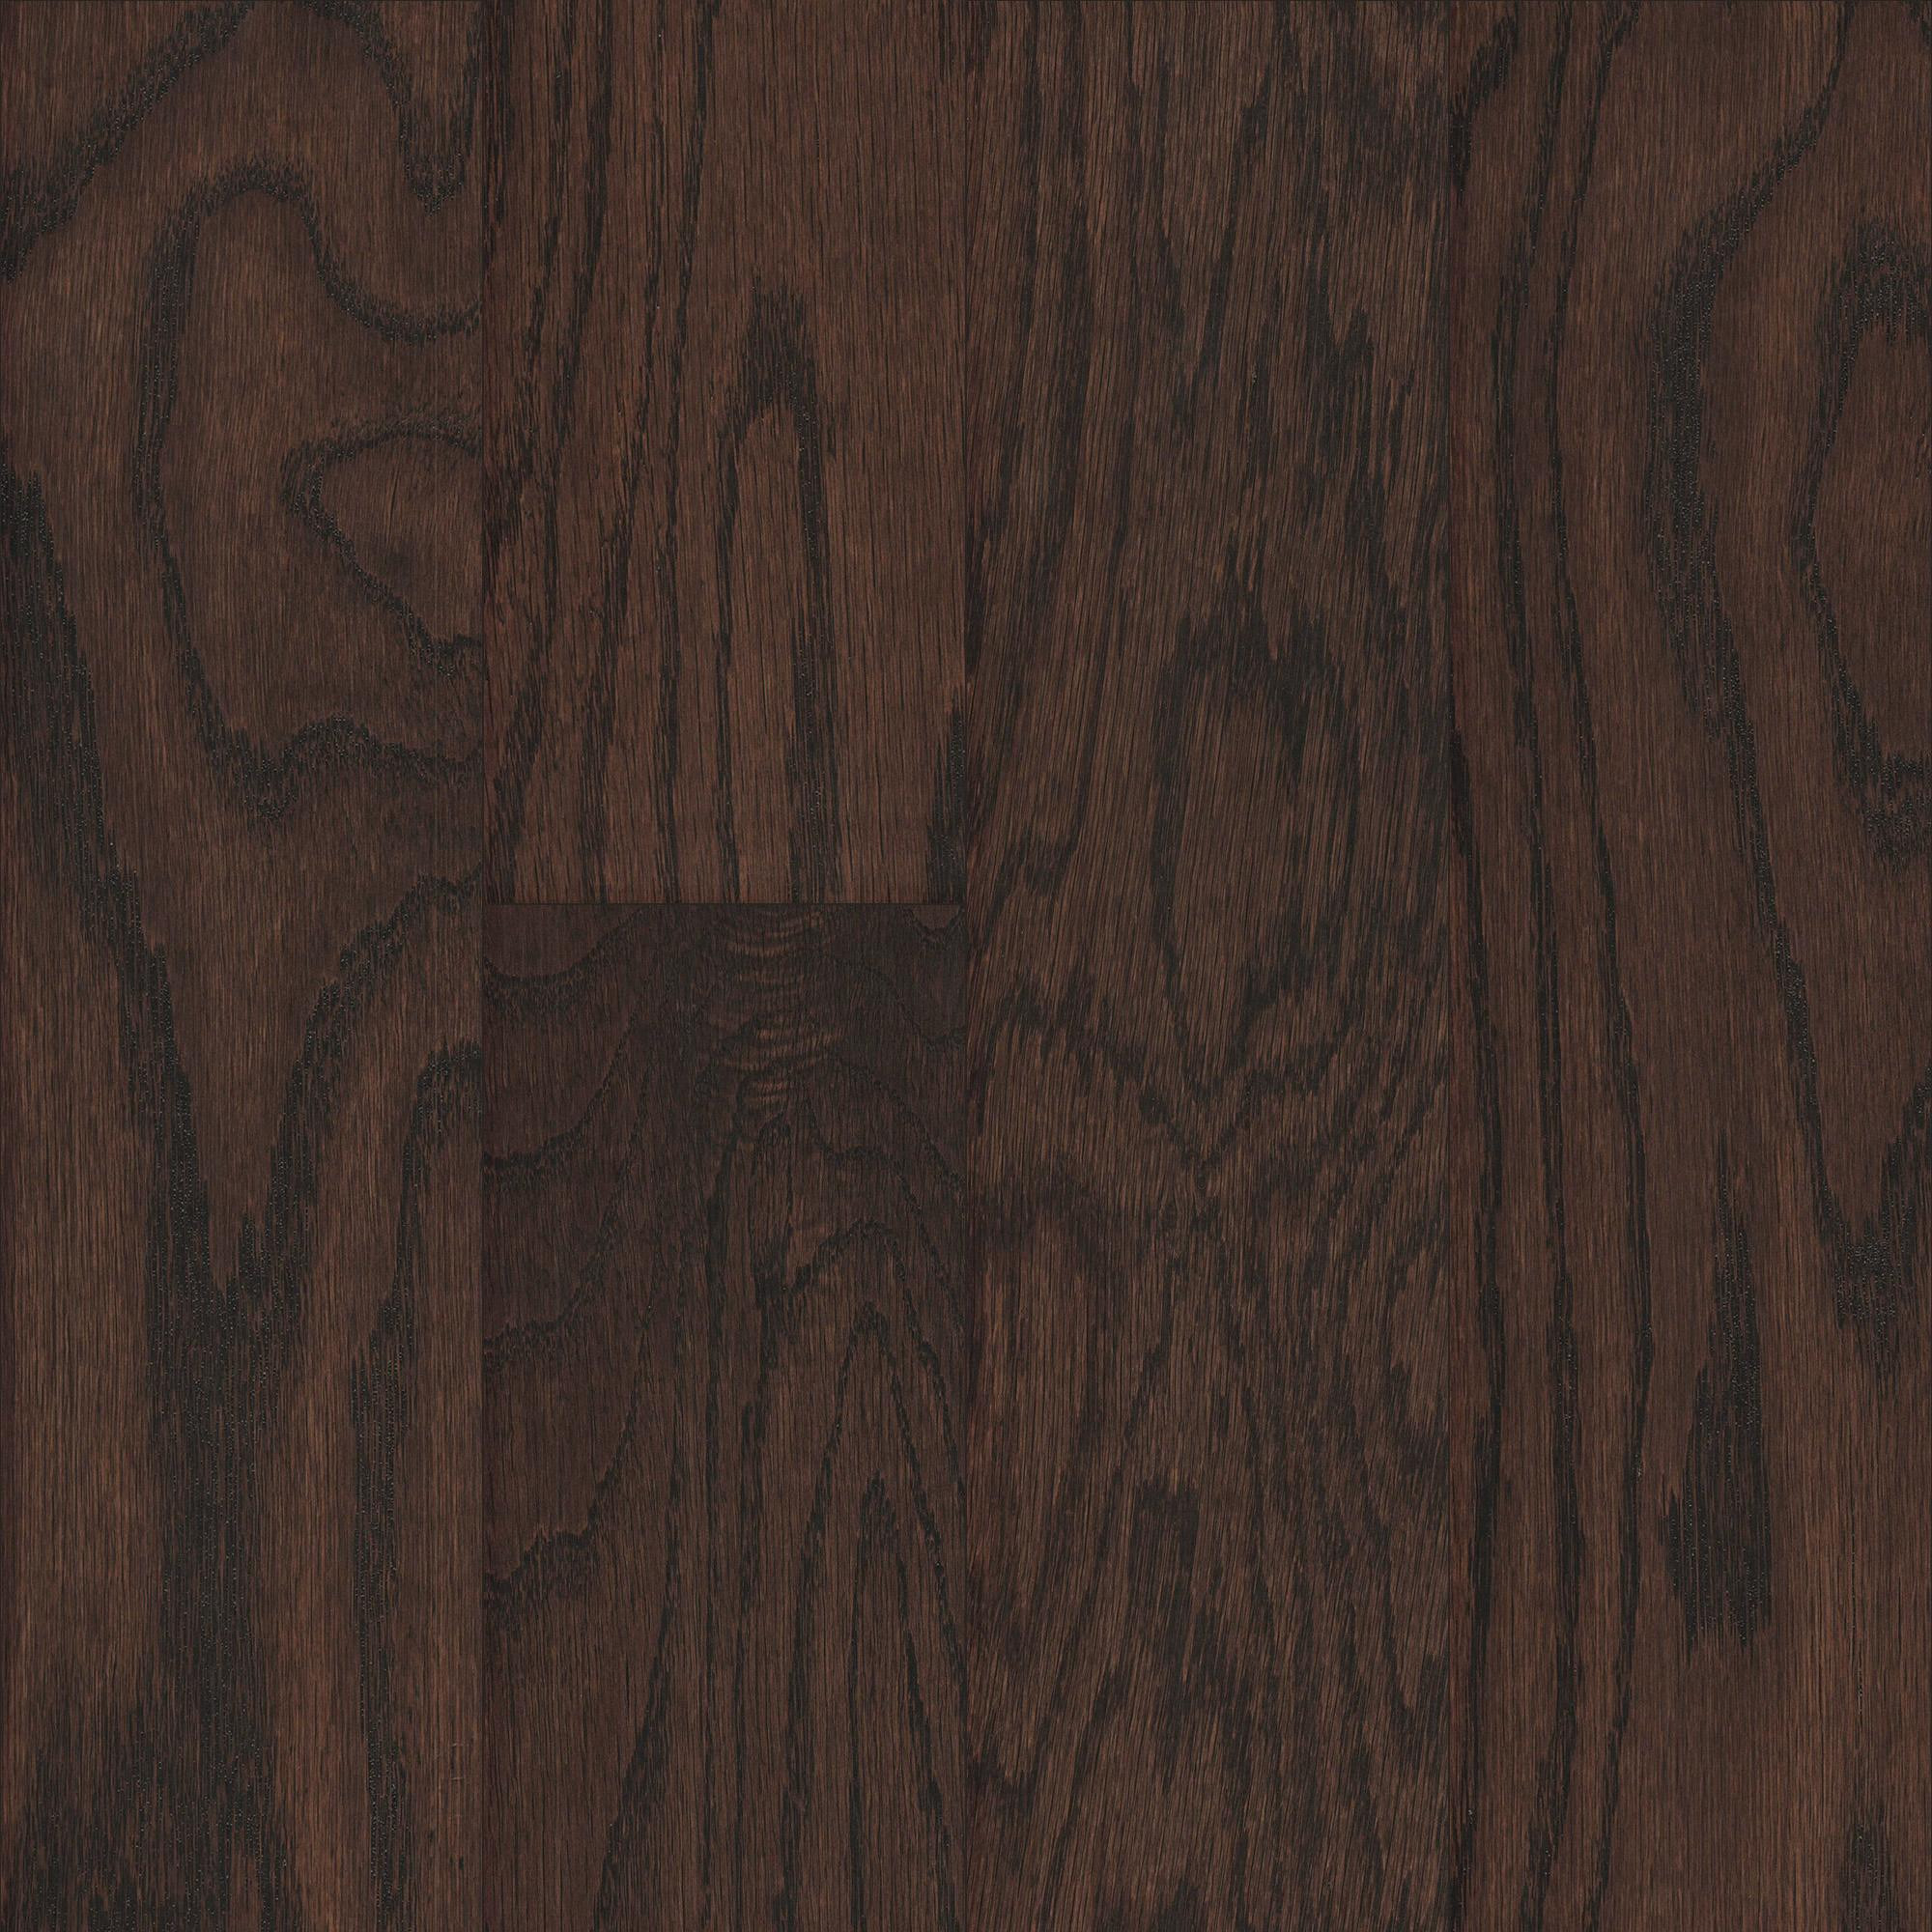 2 1 4 red oak solid hardwood flooring of mullican ridgecrest oak burnt umber 1 2 thick 5 wide engineered within mullican ridgecrest oak burnt umber 1 2 thick 5 wide engineered hardwood flooring